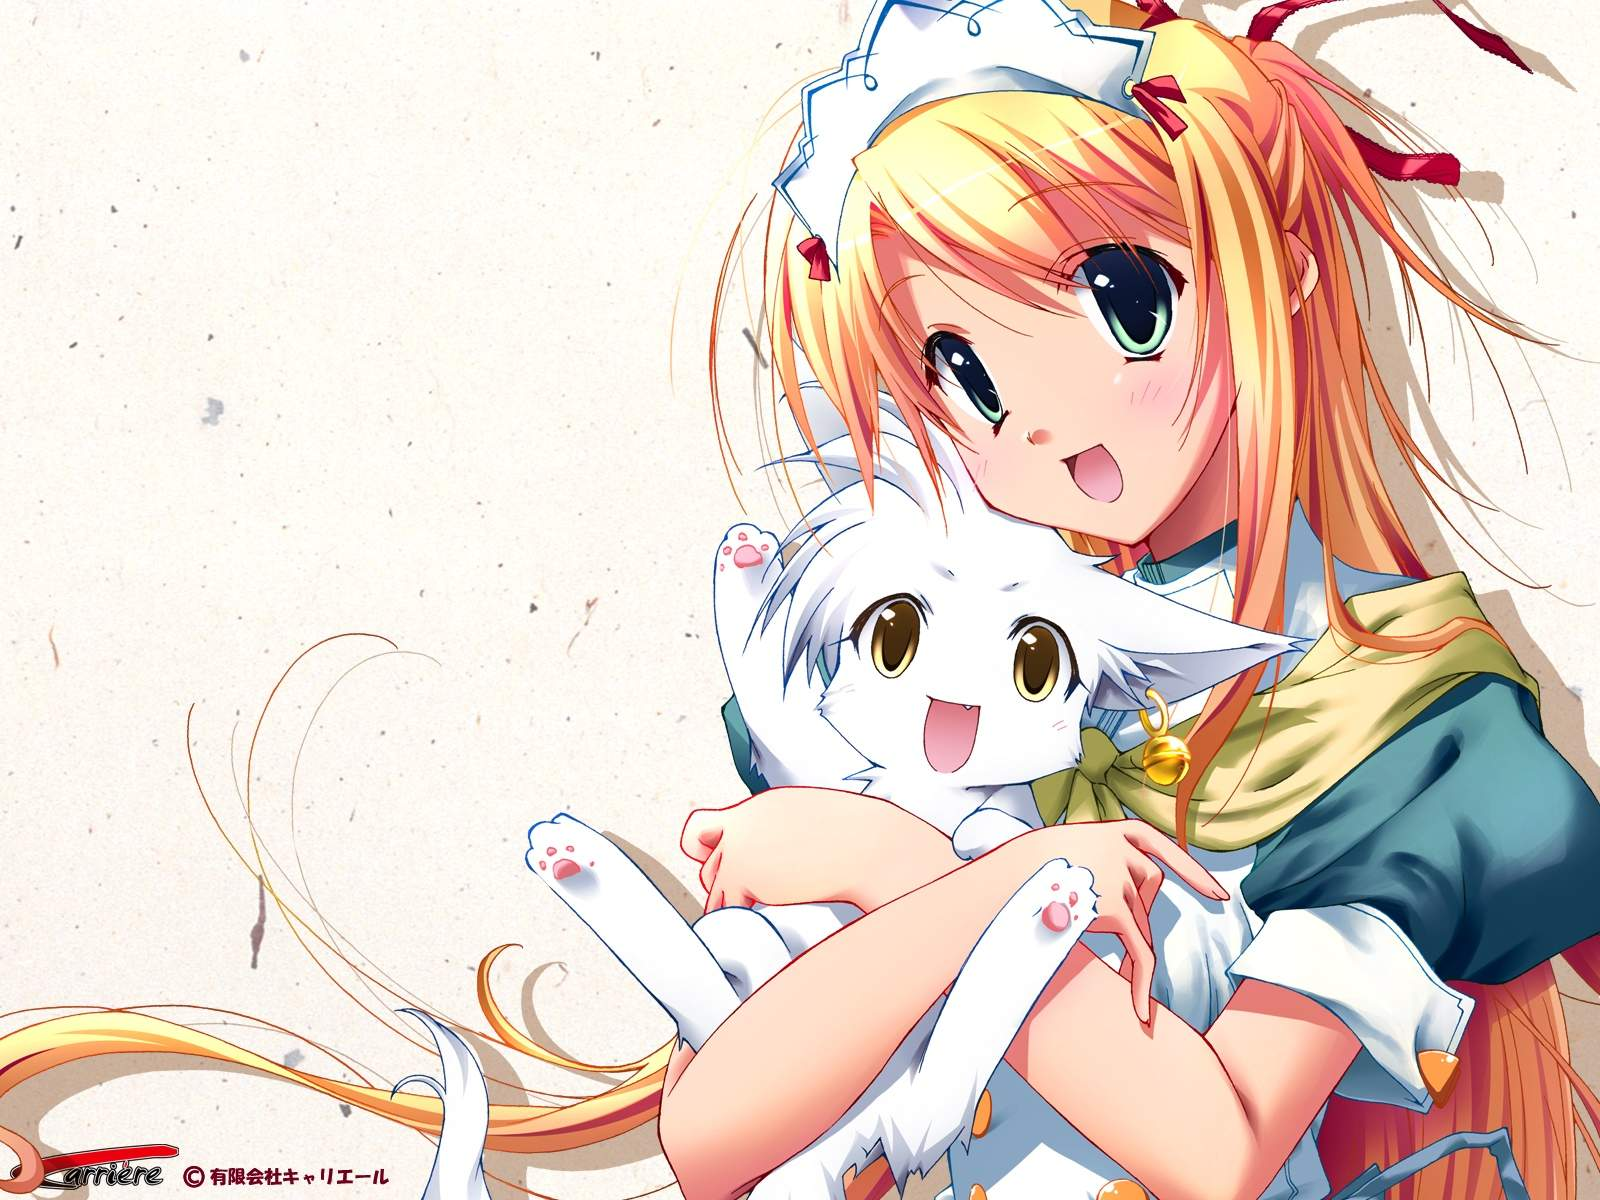 Hickey photography cute anime wallpapers - Cute anime desktop wallpaper ...